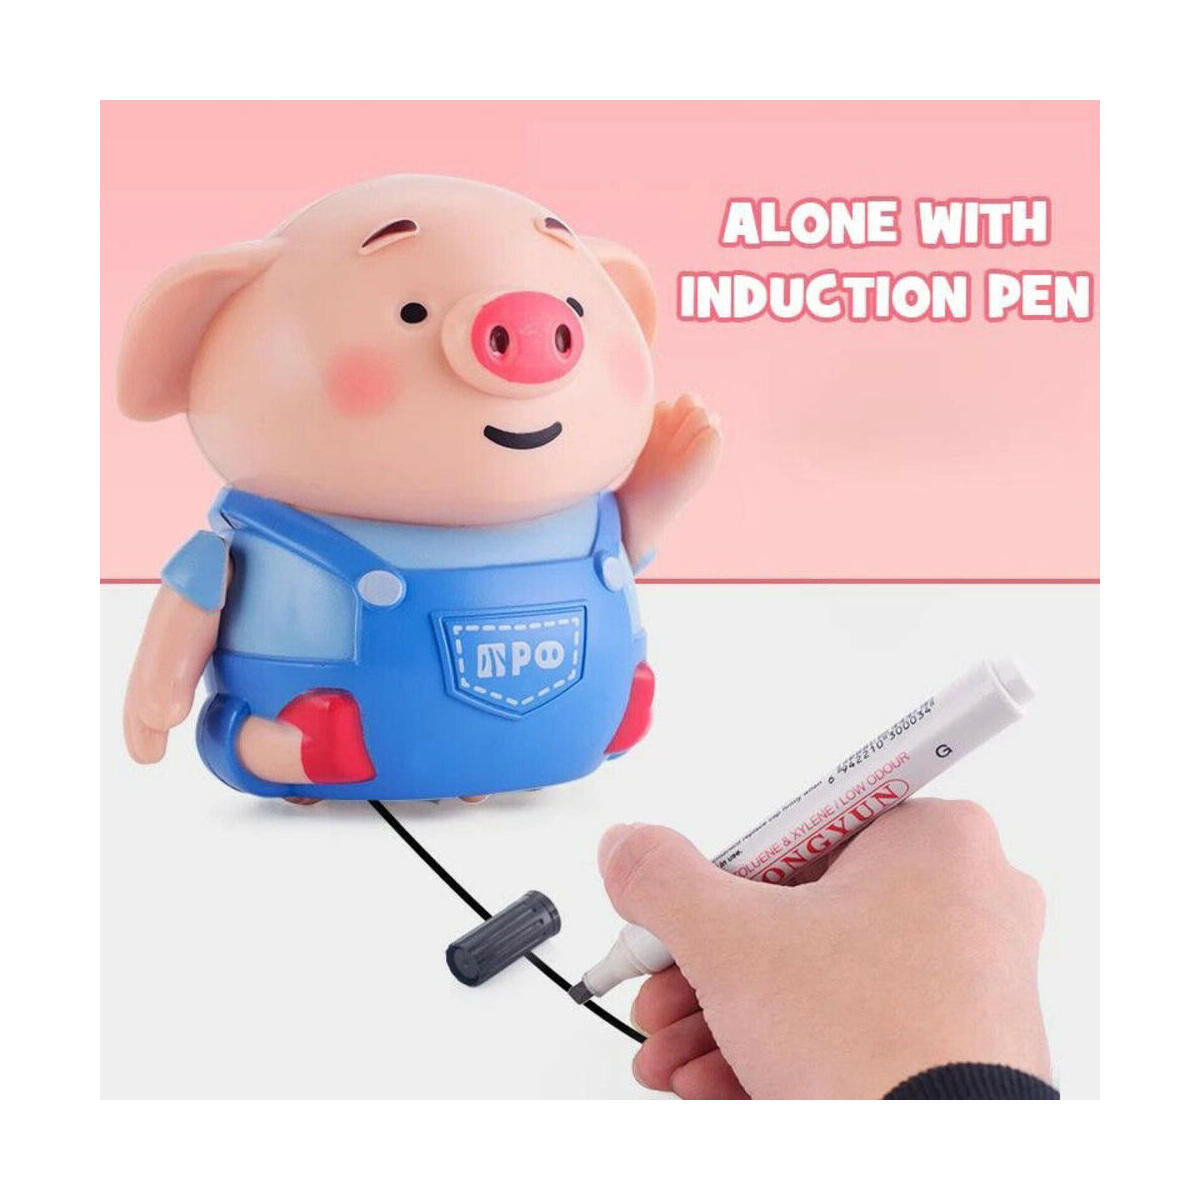 Mini Magic Inductive Robot Pig Cute Toy Moving Follows Drawn Line with Magic Pen, Learning and Educational Toys for Kids & Children Gift